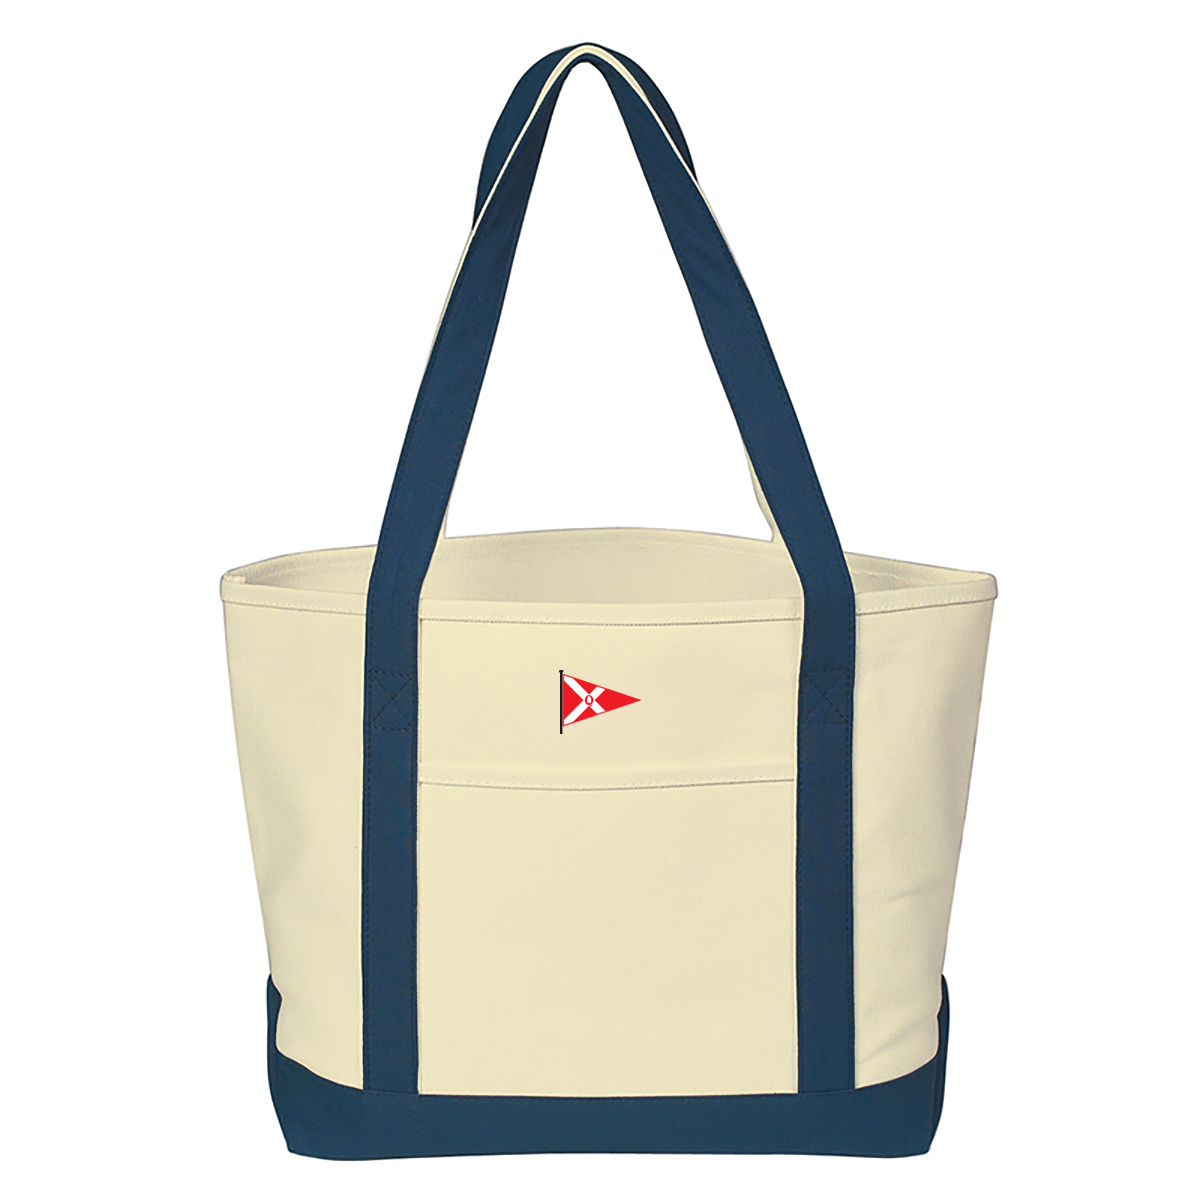 Quissett Yacht Club - Canvas Tote (QYC601)